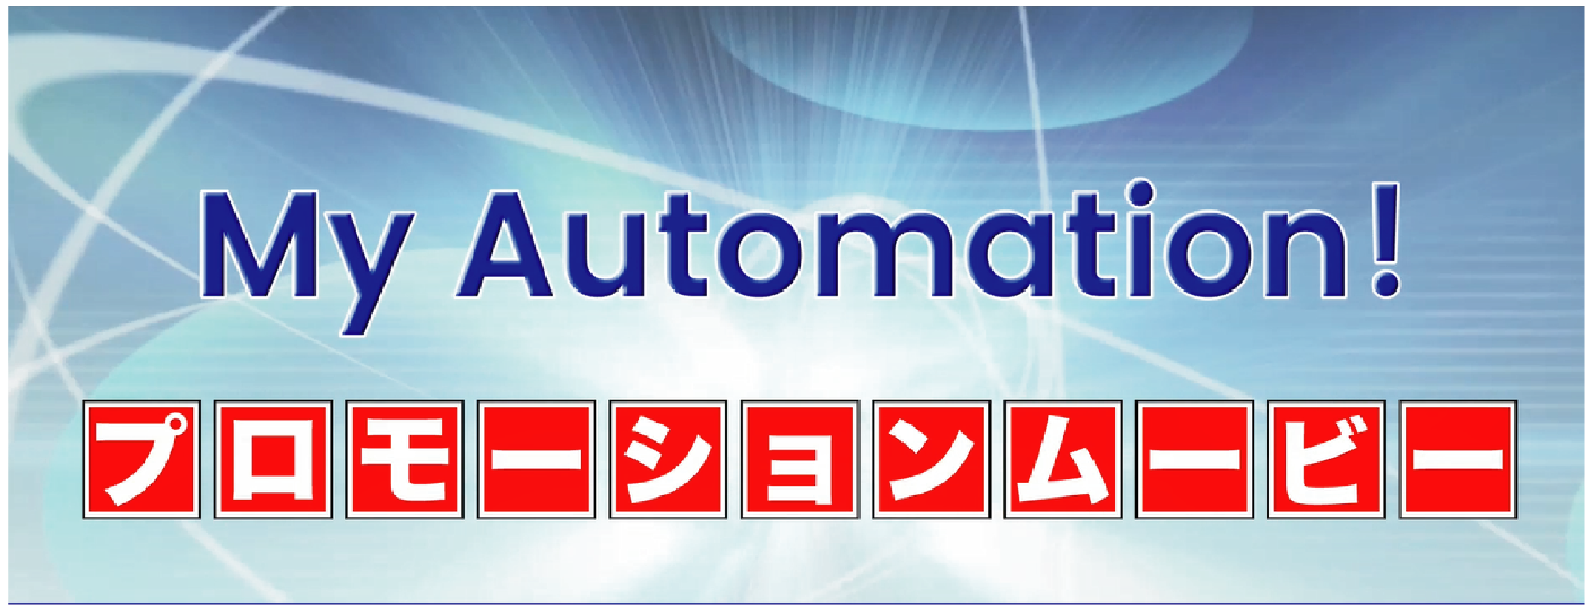 My Automation プロモーションムービー